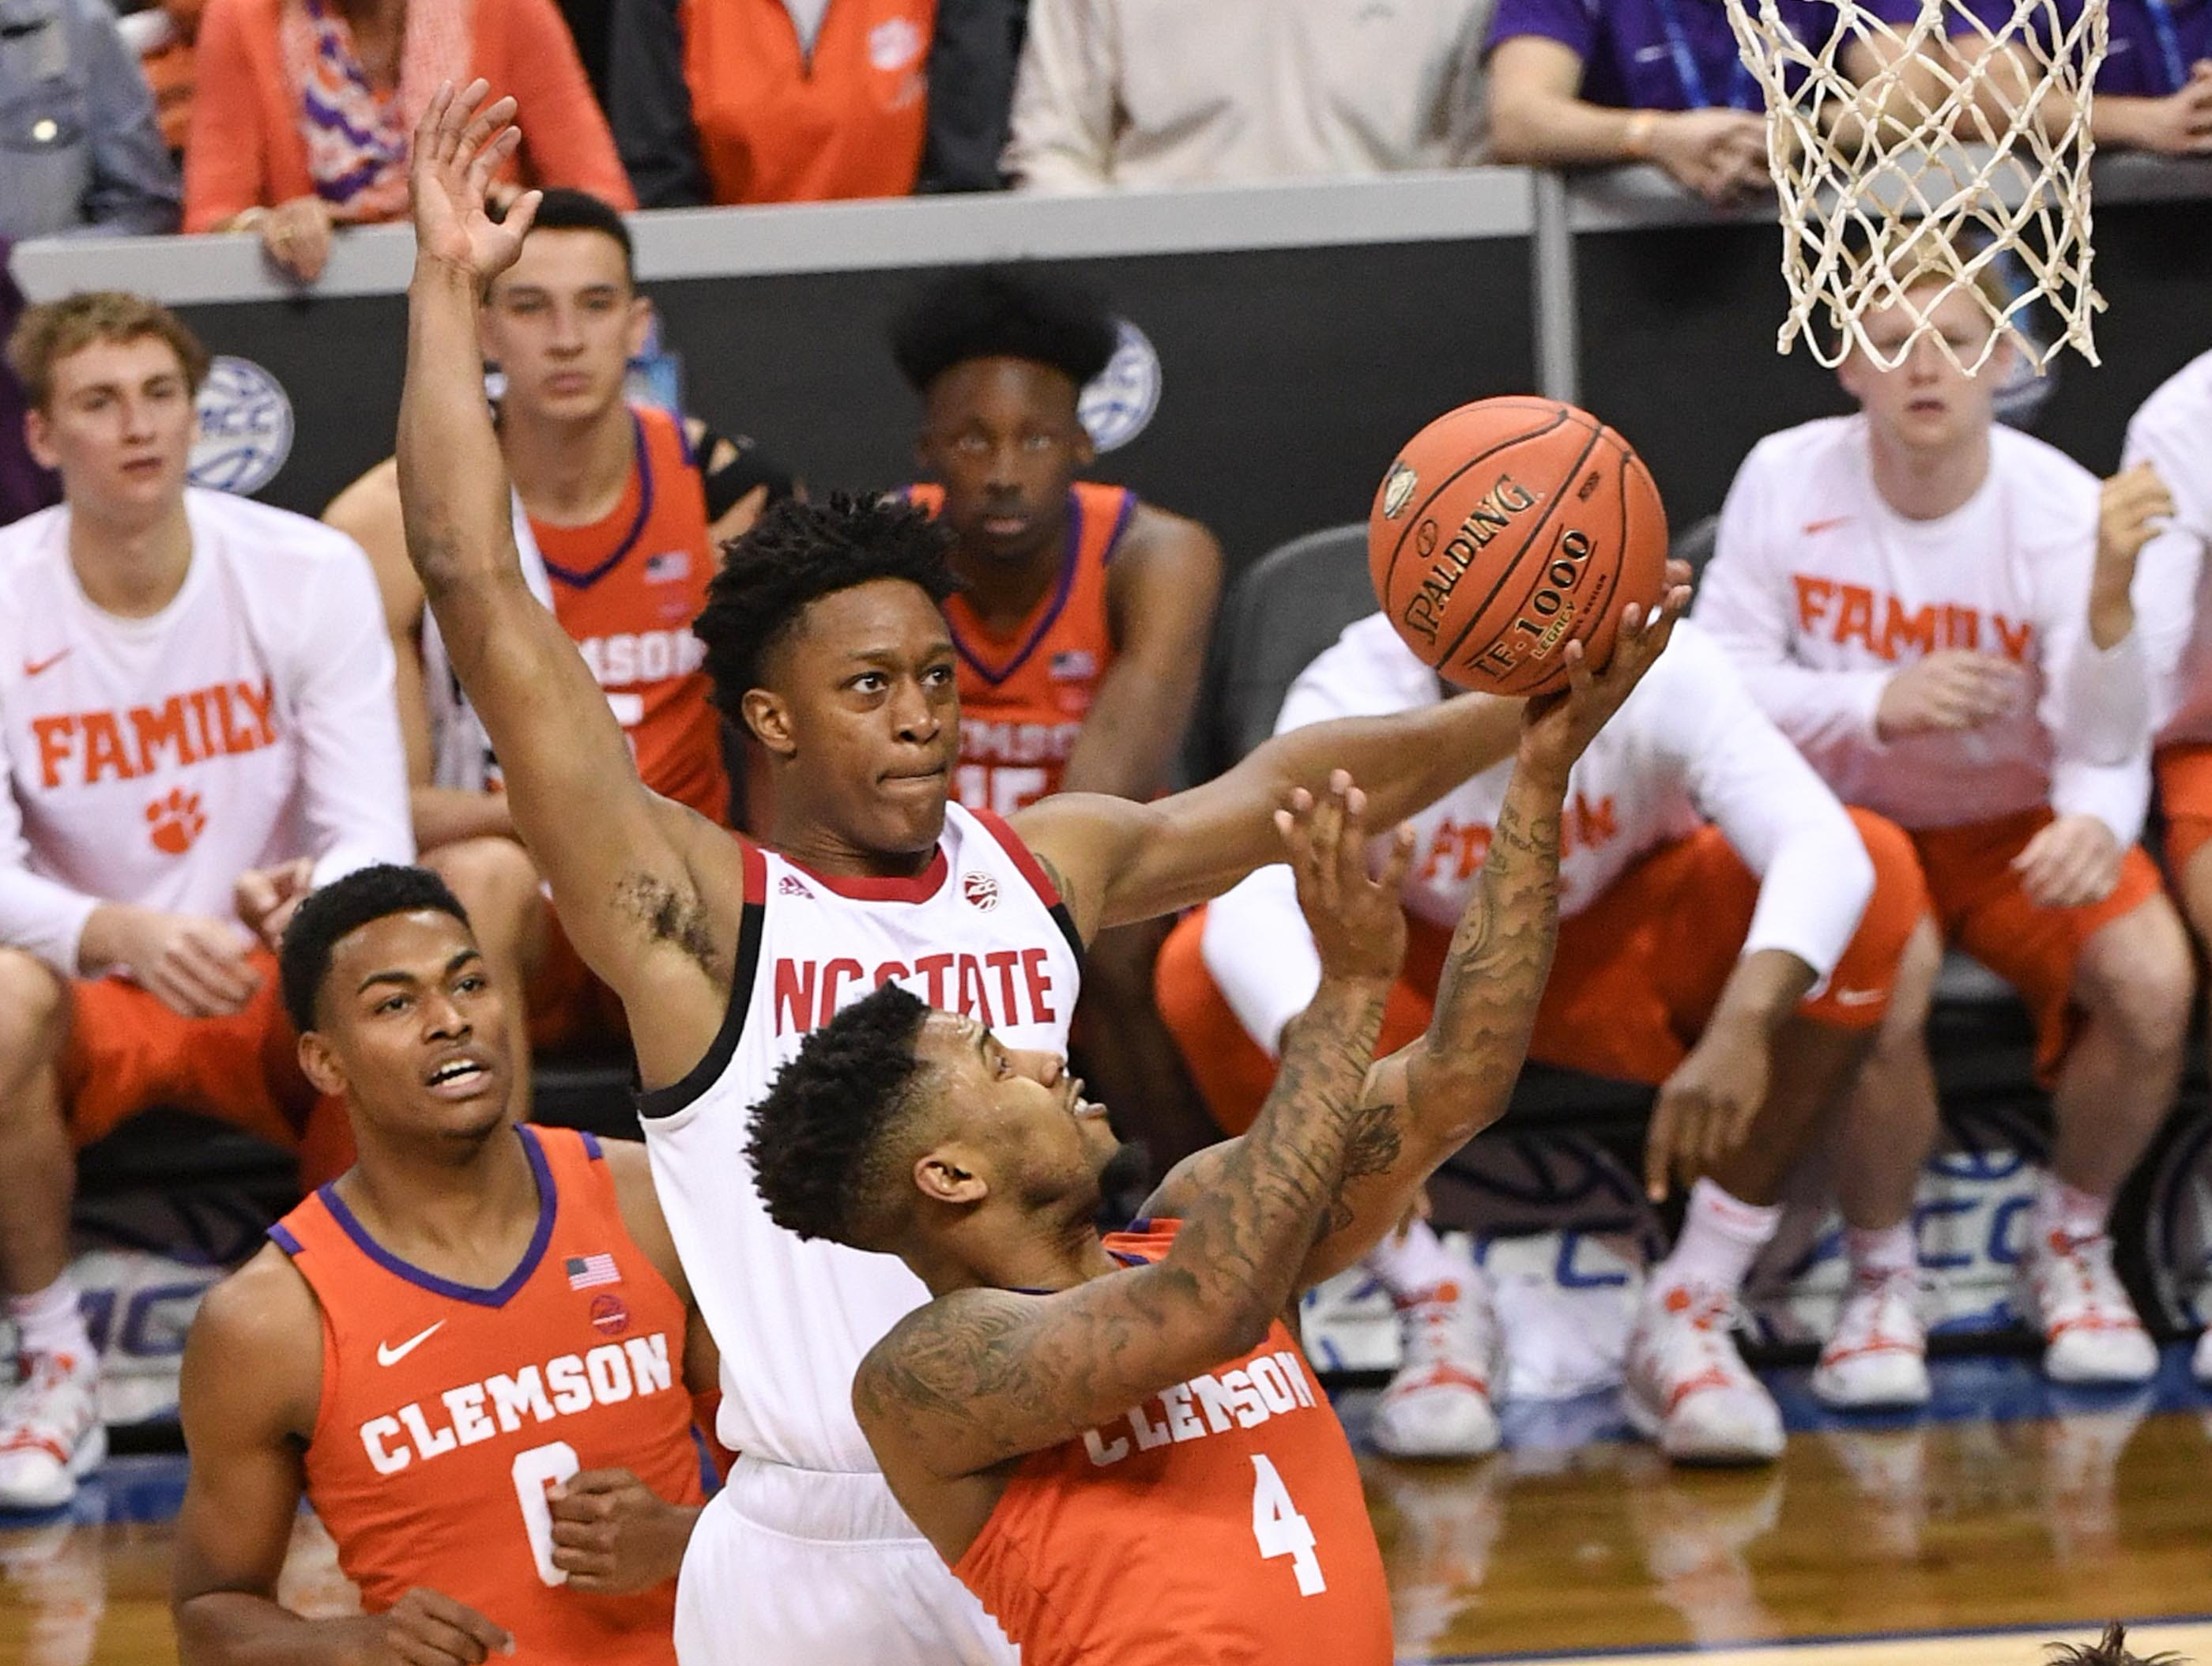 Clemson guard Shelton Mitchell (4) has a shot blocked by N.C. State guard C.J. Bryce(13) during the second half at the Spectrum Center in Charlotte, N.C. Tuesday, March 12, 2019.